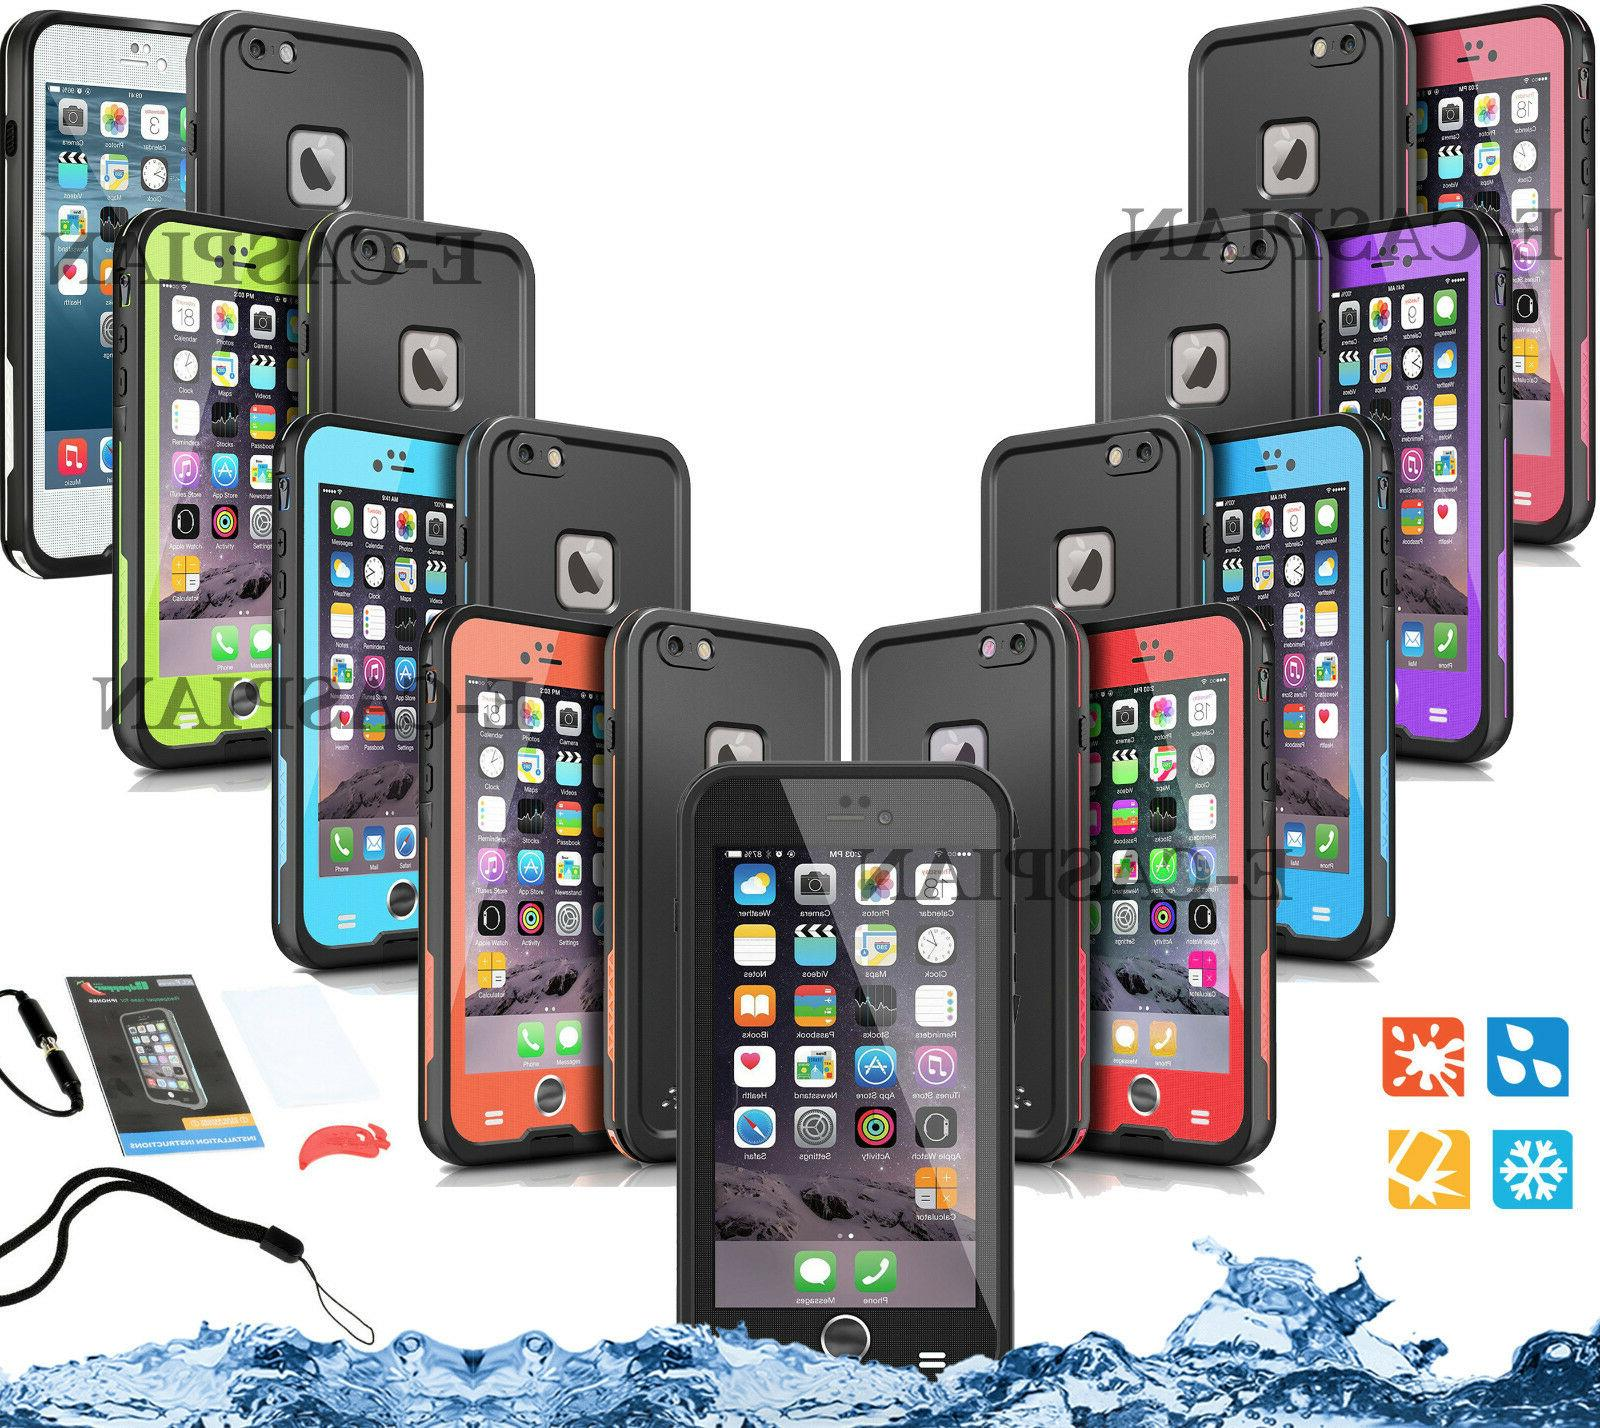 WATERPROOF SHOCKPROOF CASE For iPhone 6 6S Plus